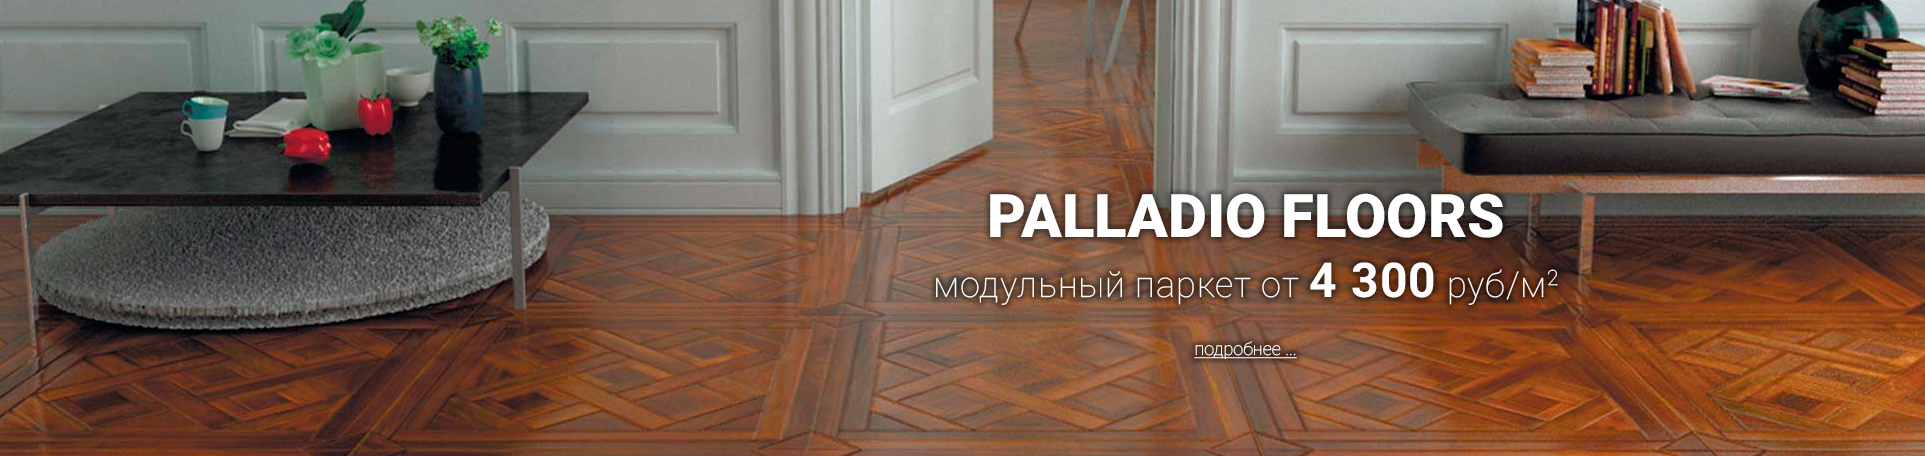 palladio-floors